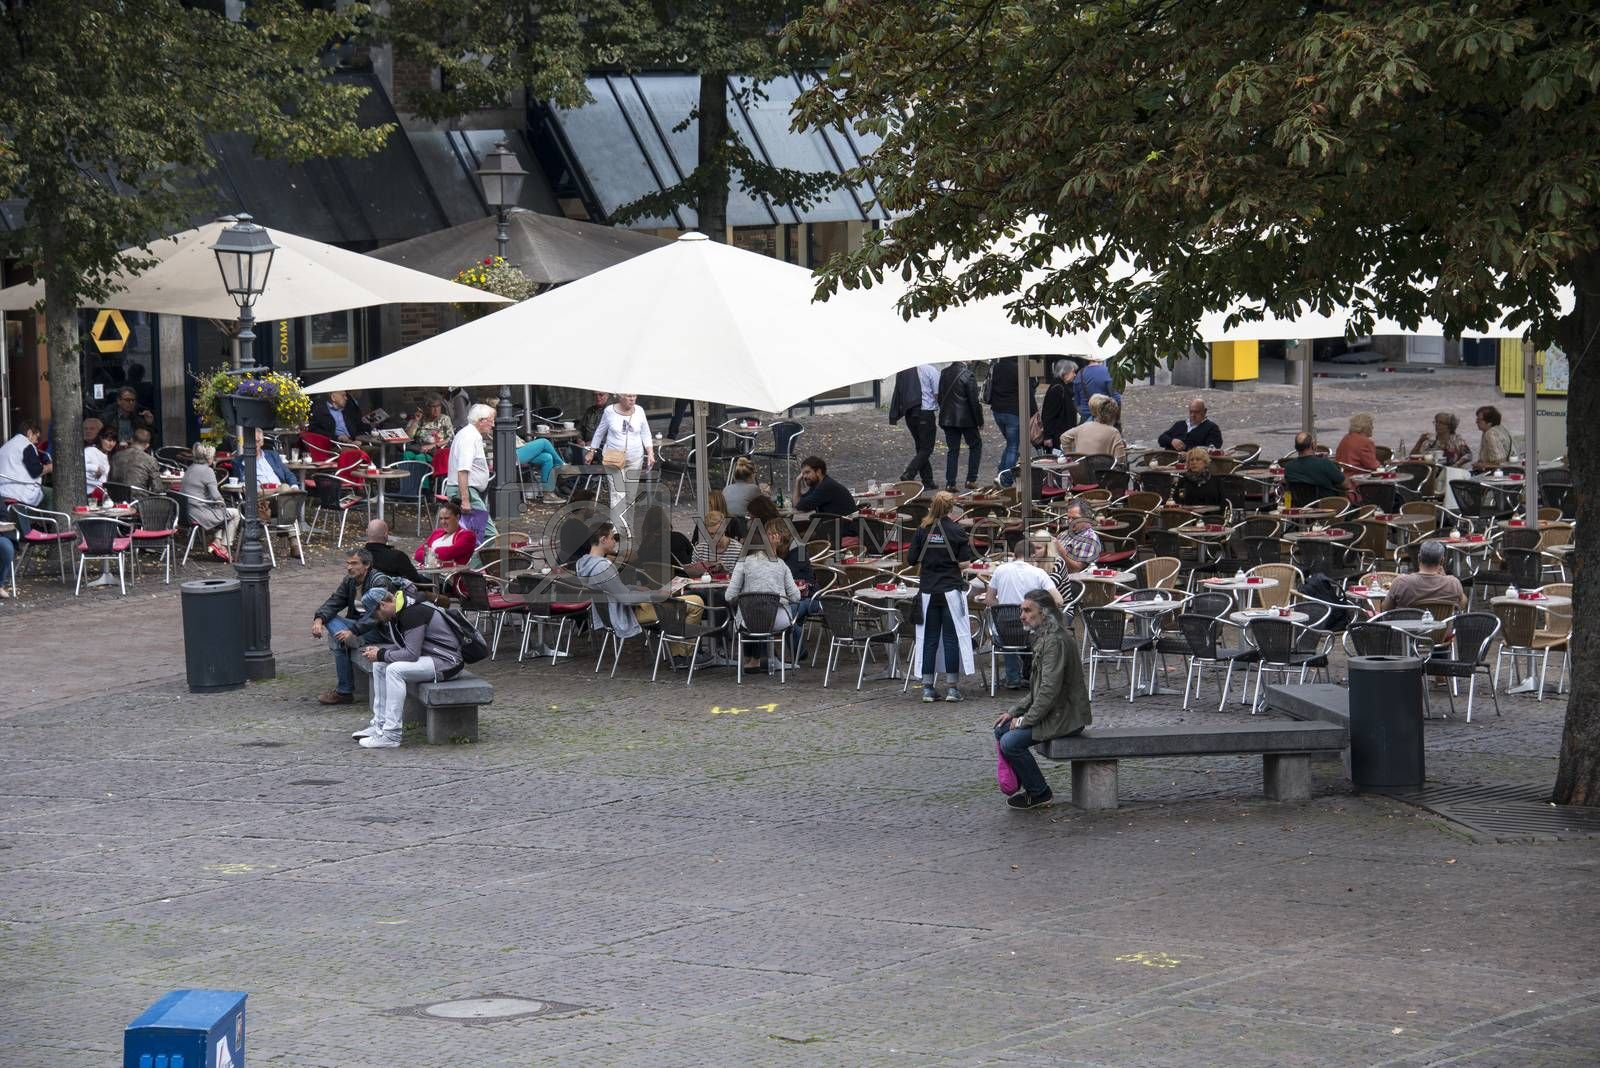 GERMANY,AACHEN - SEPT 29; 2014: Tourists Having Lunch At Outdoor Restaurant in the center of Aachen,Aachen is famous because of the dom church next to this terrace